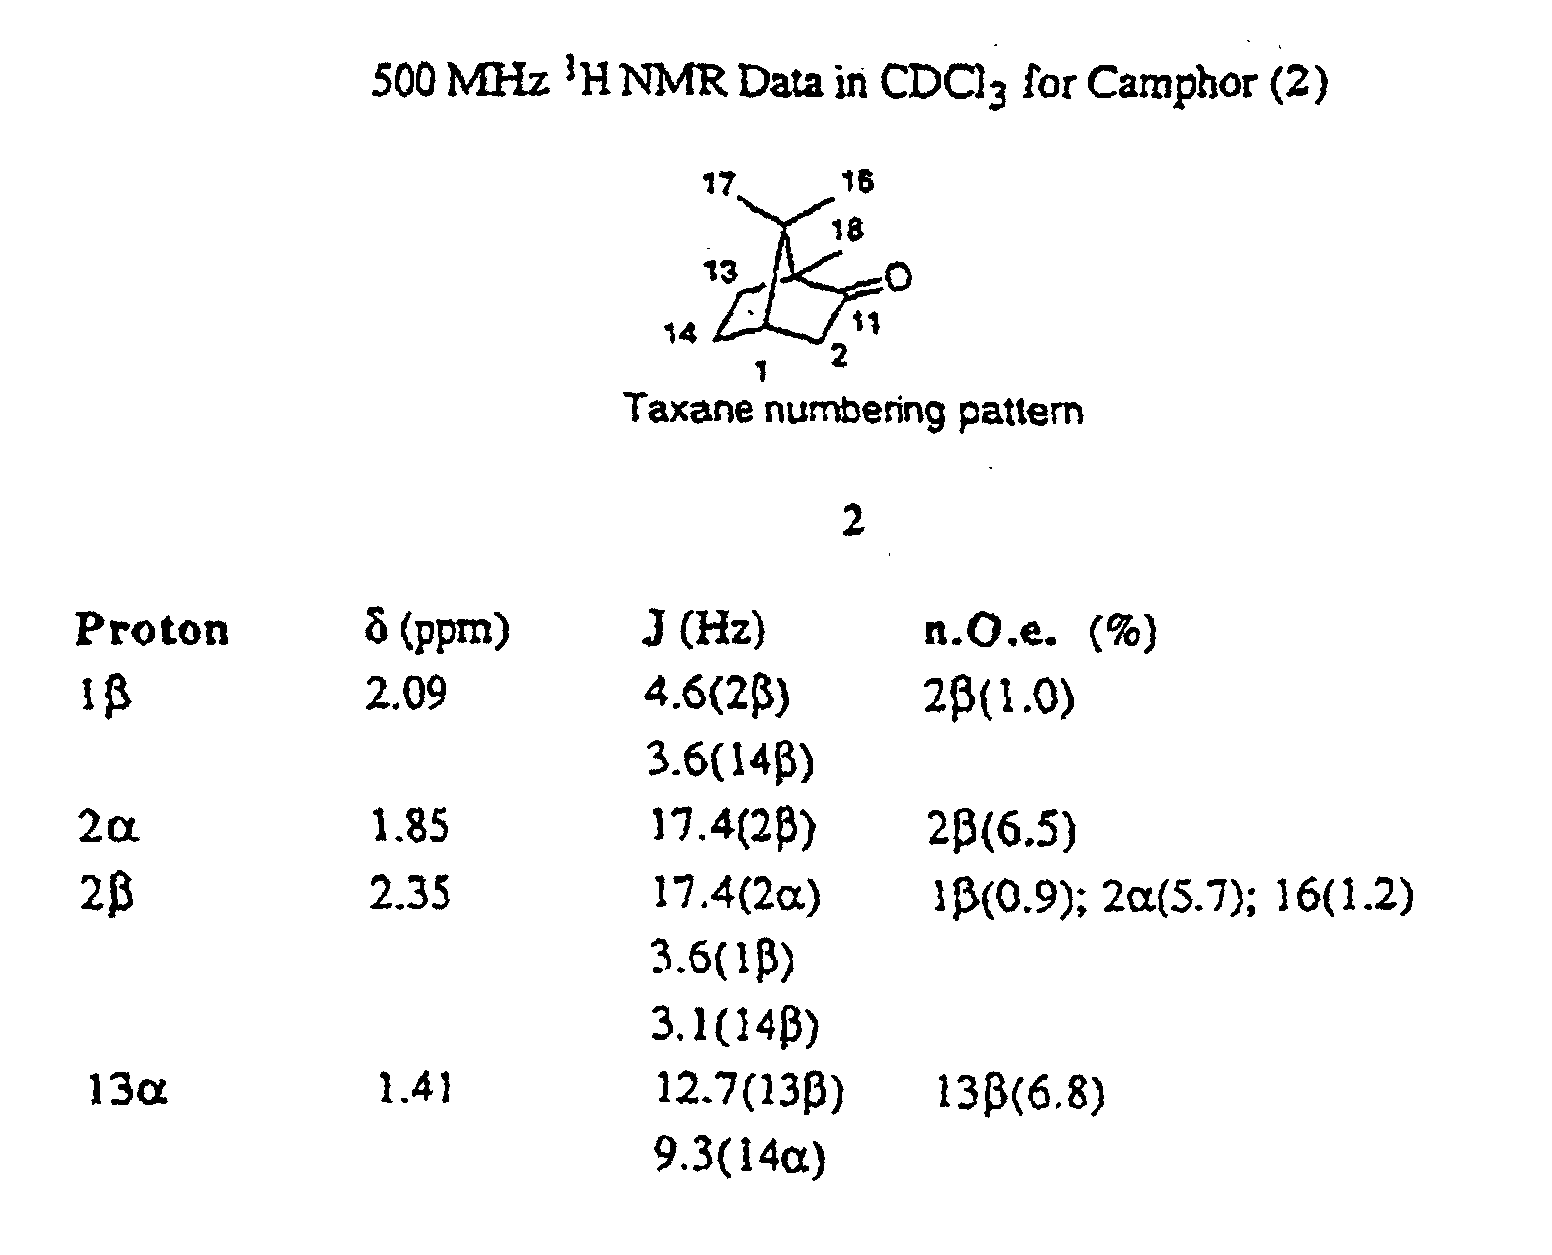 oxidation of borneol to camphor Fanning& 1&& synthesis of camphor by the oxidation of borneol christine fanning introduction oxidation and reduction reactions, or redox reactions, are extremely.